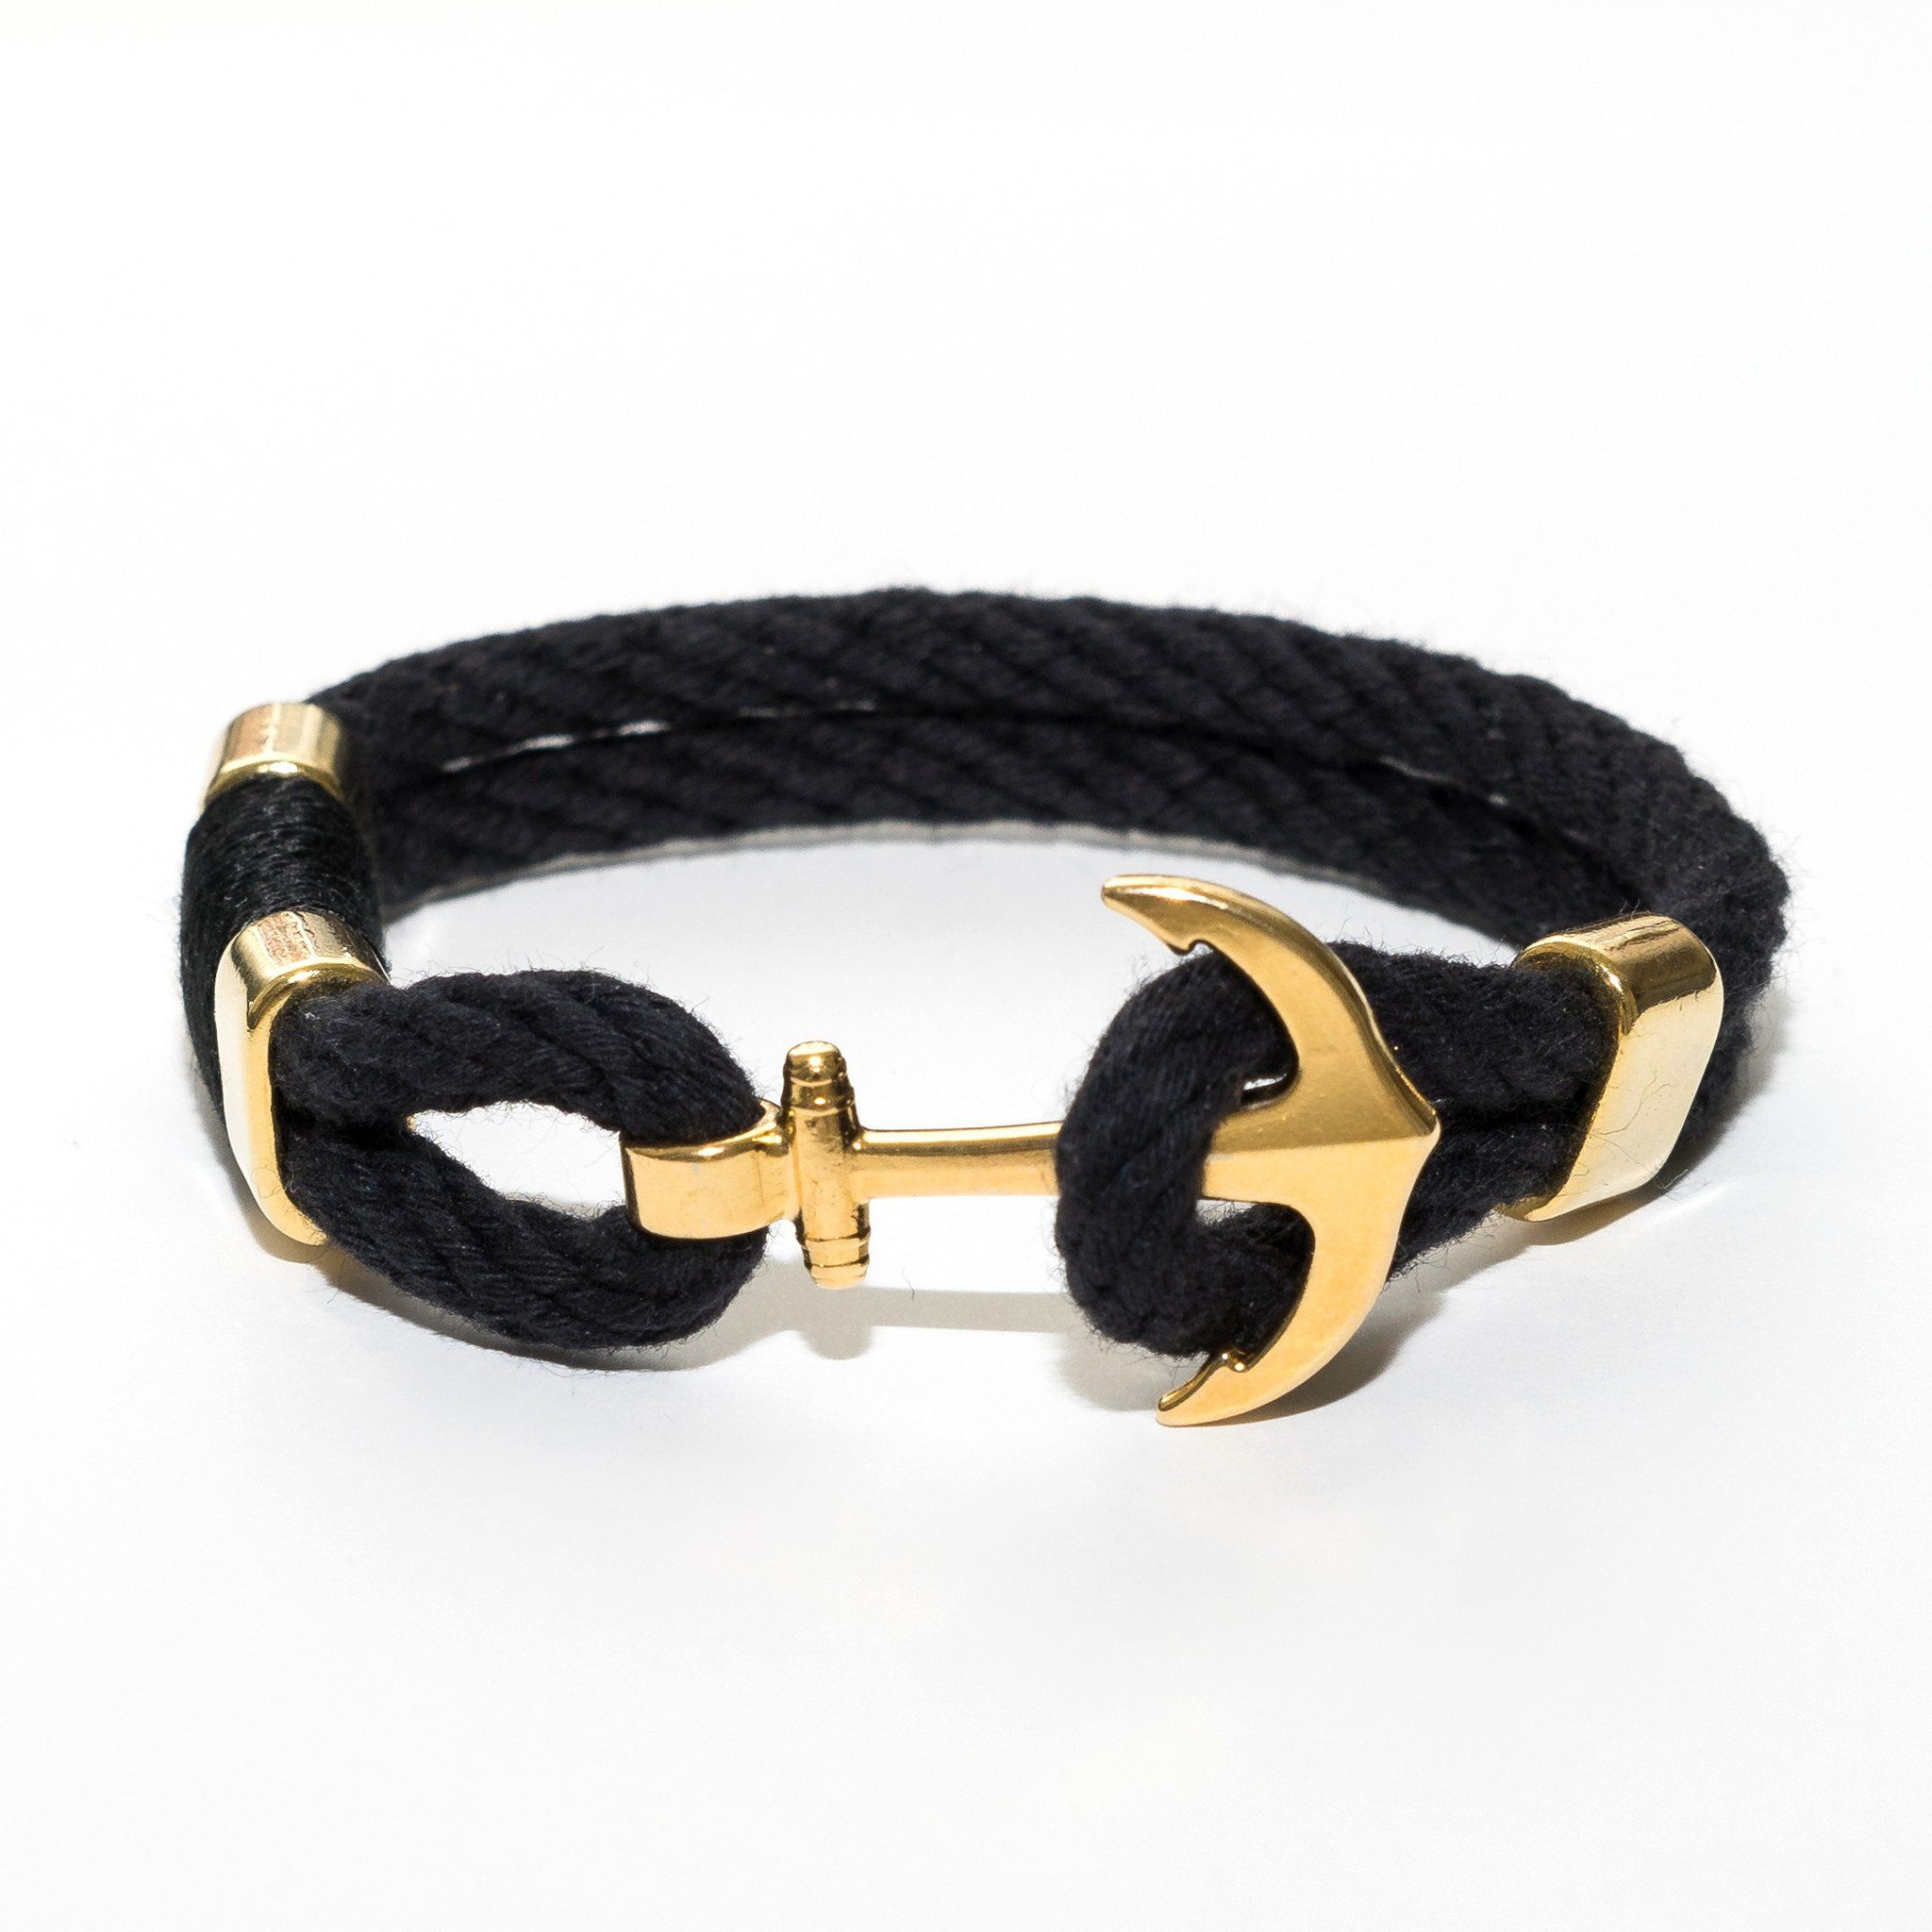 nomination with jewellers rose black edmonds bracelet finish pvd gold image